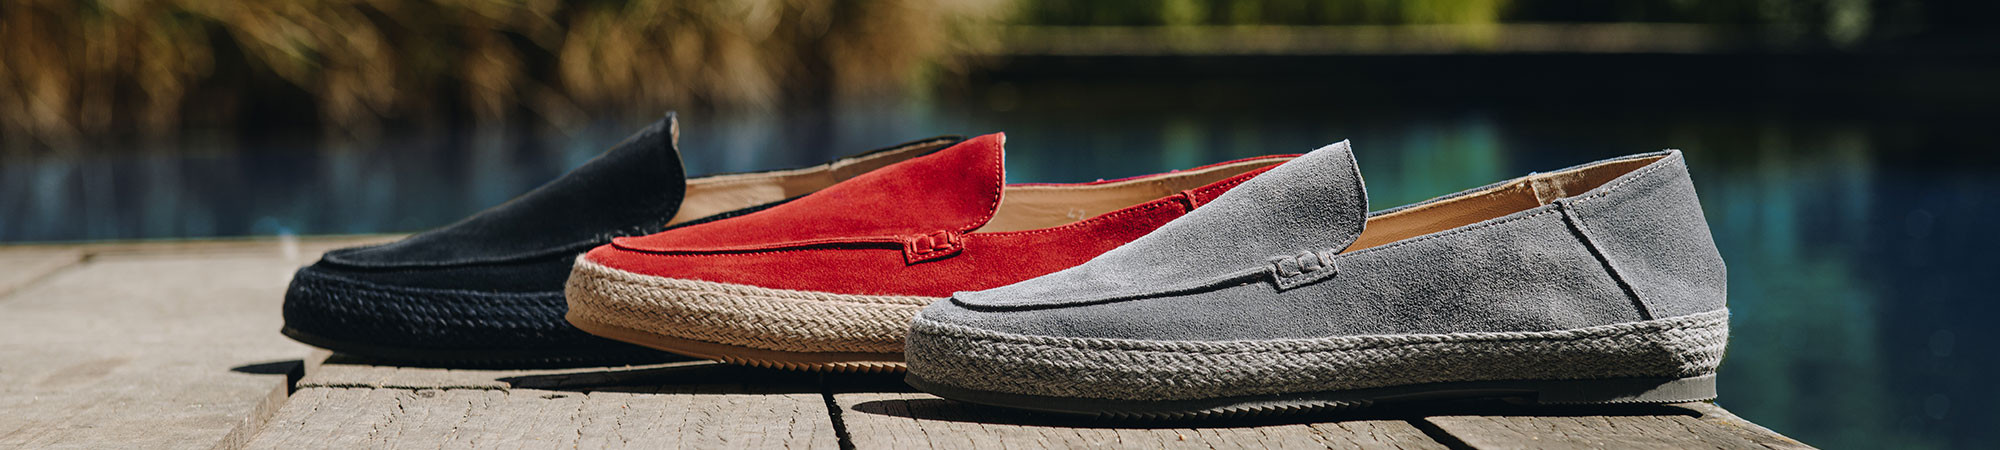 Casual and trendy shoes for men - Emling Urban Chic